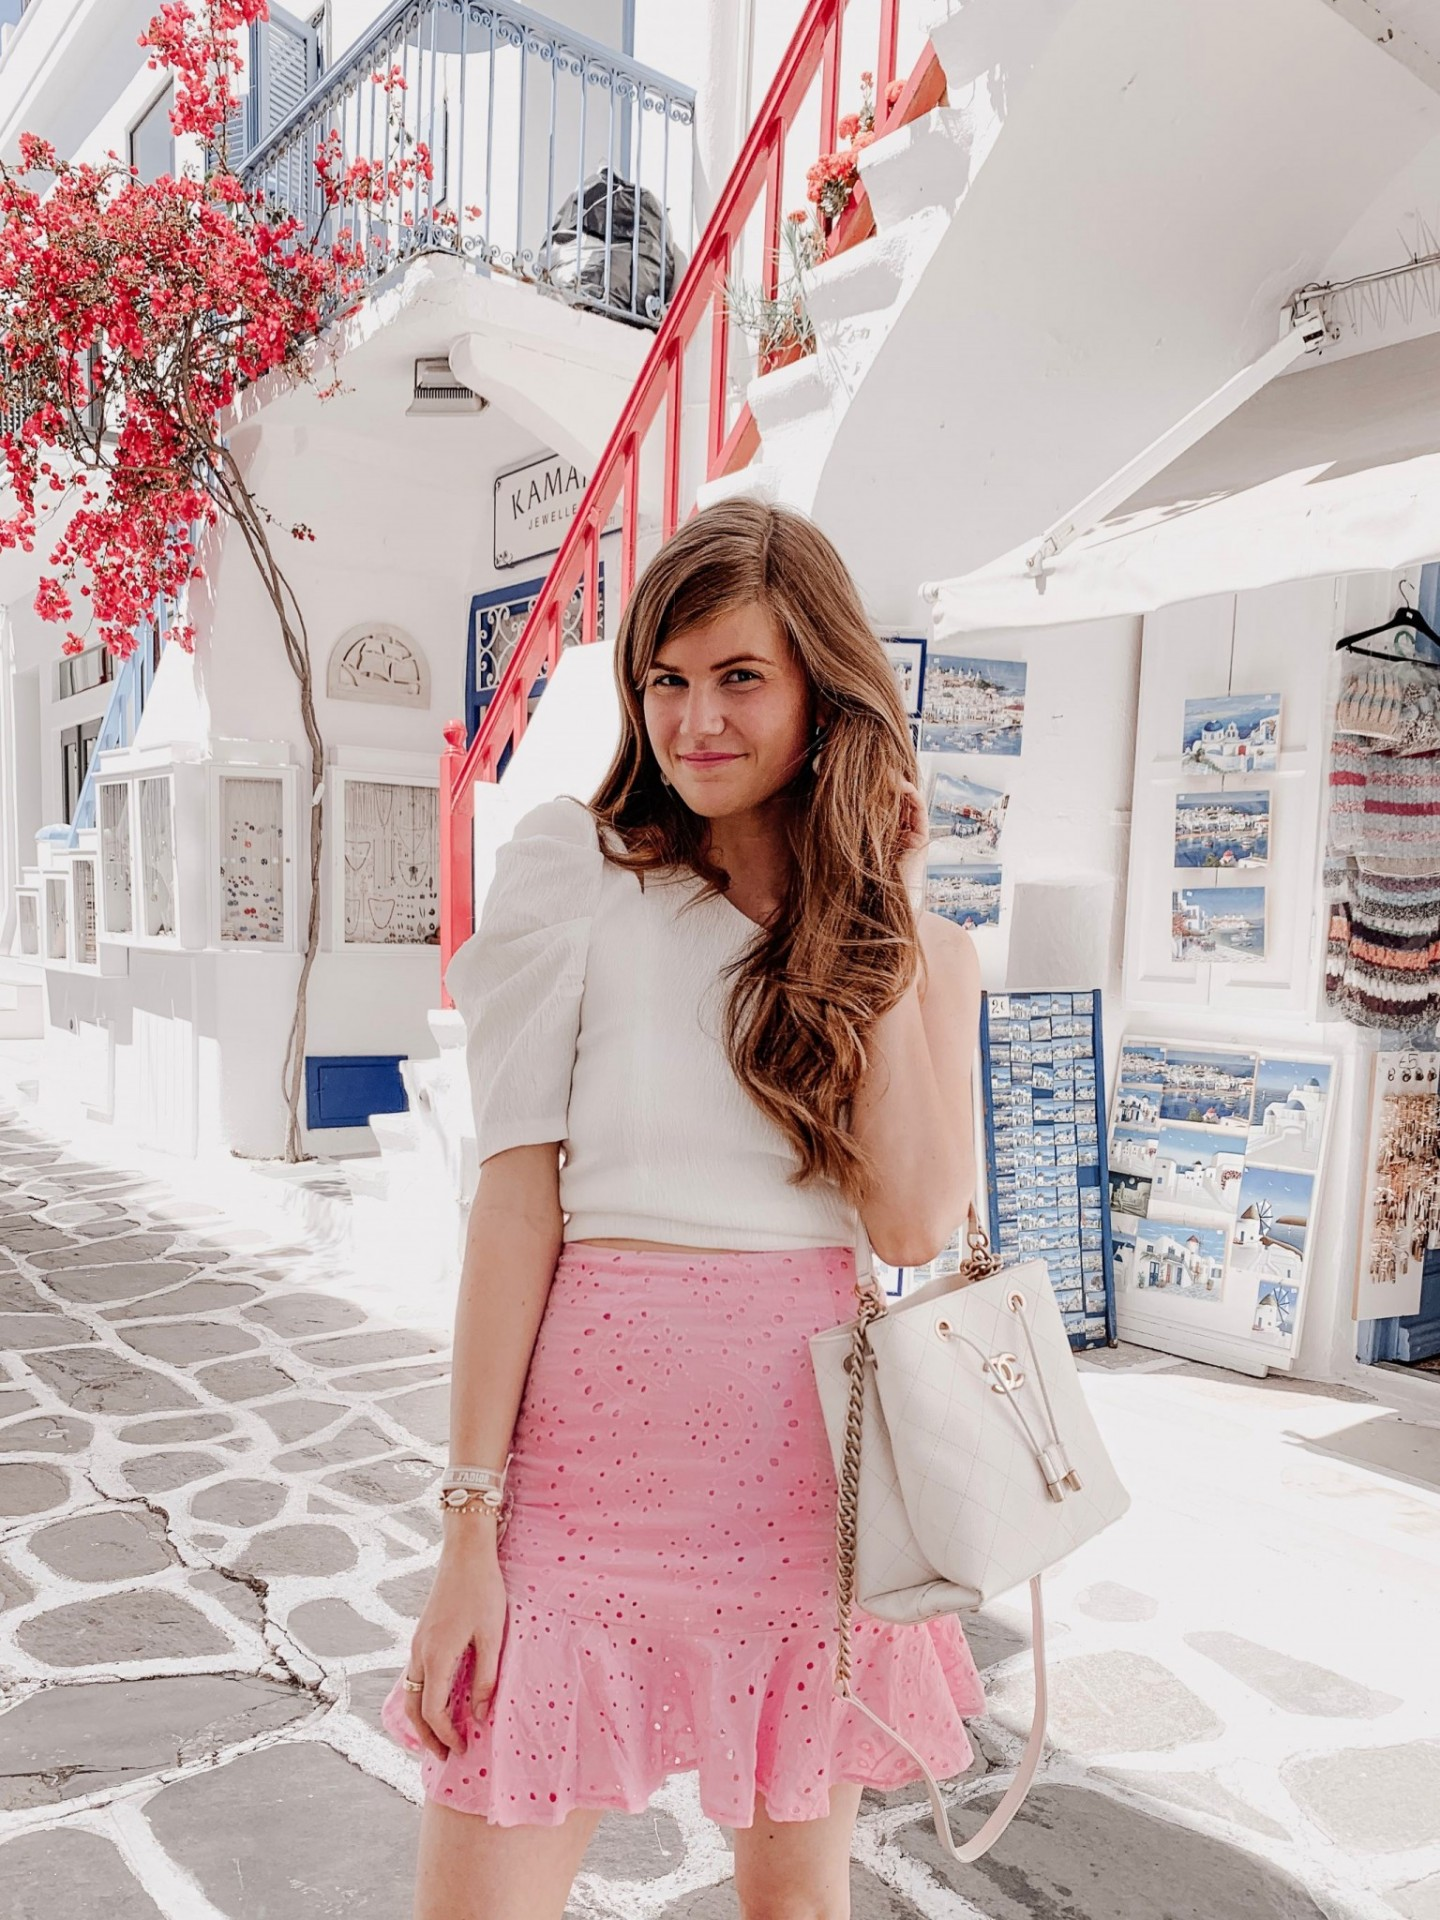 Mykonos Travel Guide featured by top London travel blogger Mollie Moore; Image of a woman wearing a white top and pink skirt.